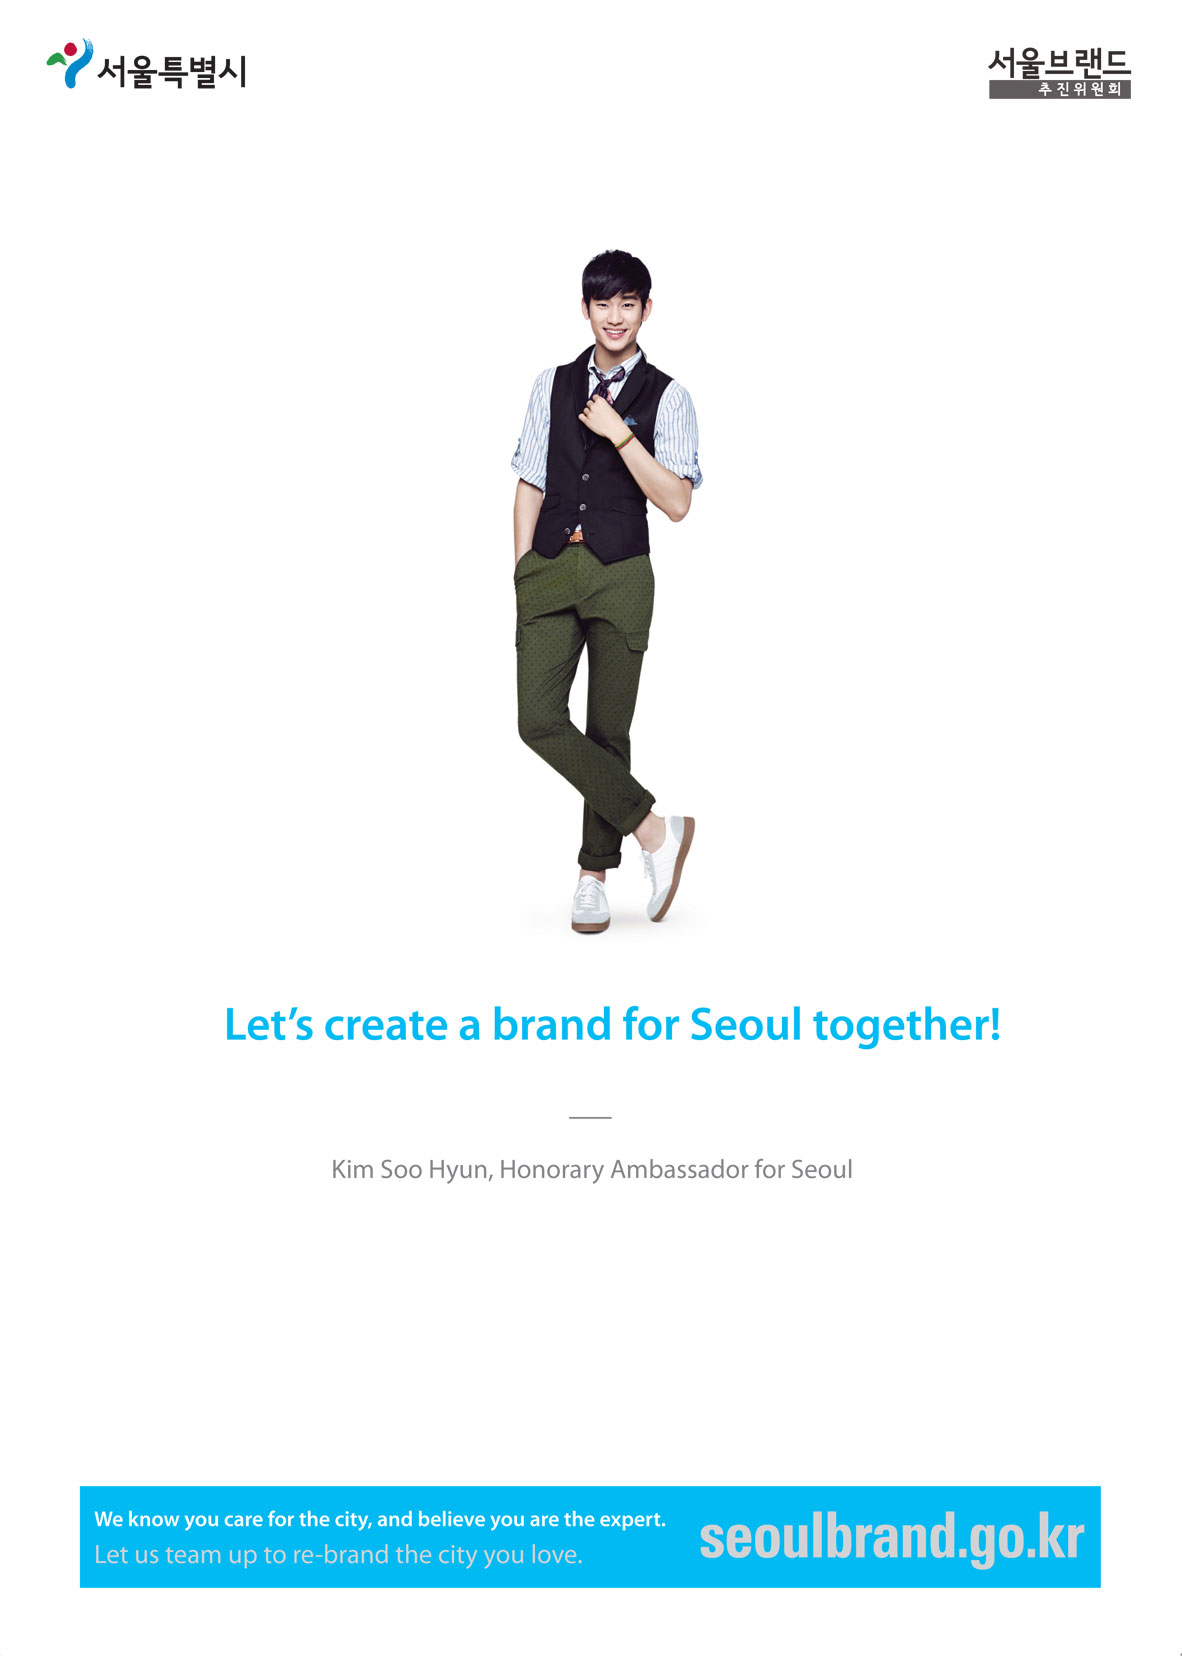 Let's create a brand for Seoul together! Kim Soo Hyun, Honorary Ambassador for Seoul We know you care for the city, and believe you are the expert. Let us team up to re-brand the city you love.